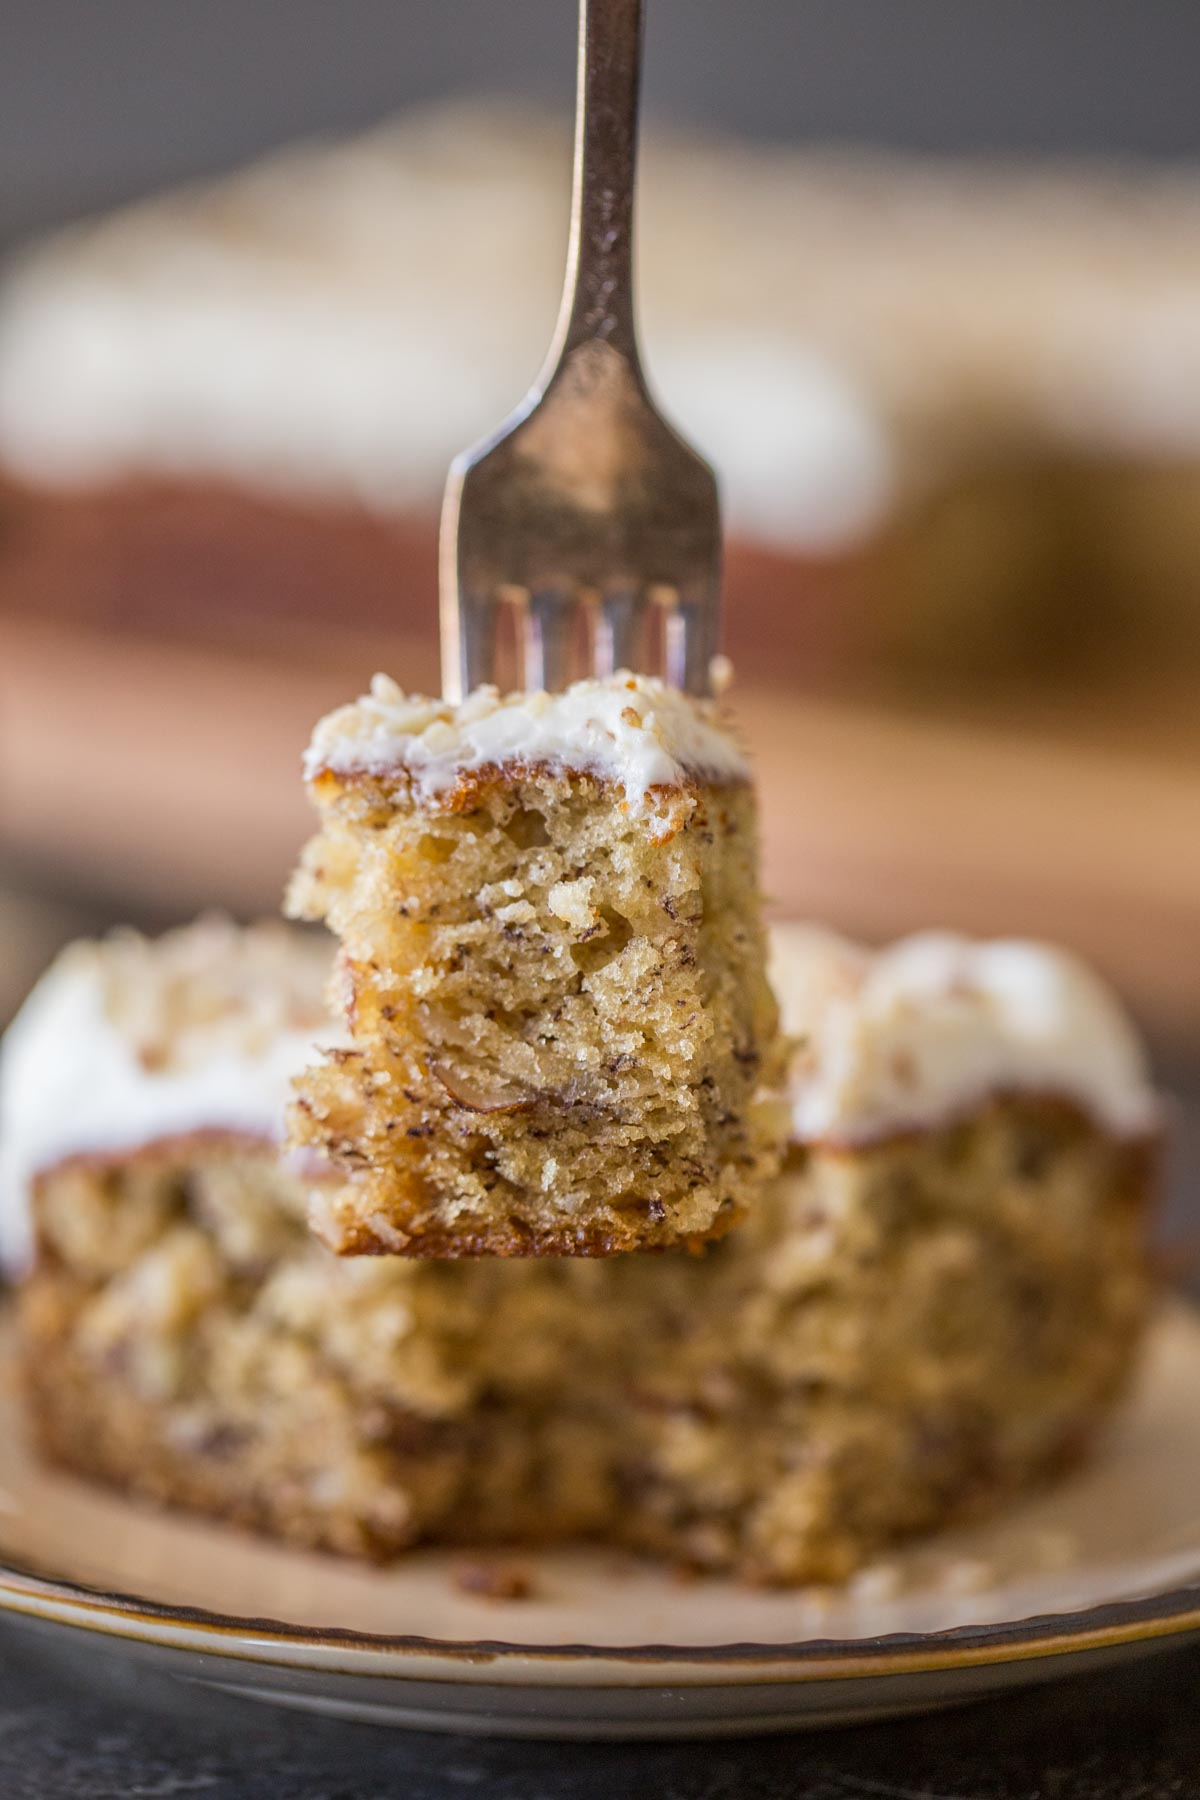 A fork with a bite of the Banana Cake with Fluffy Cream Cheese Frosting on it, with the rest of the piece of cake on a plate in the background.